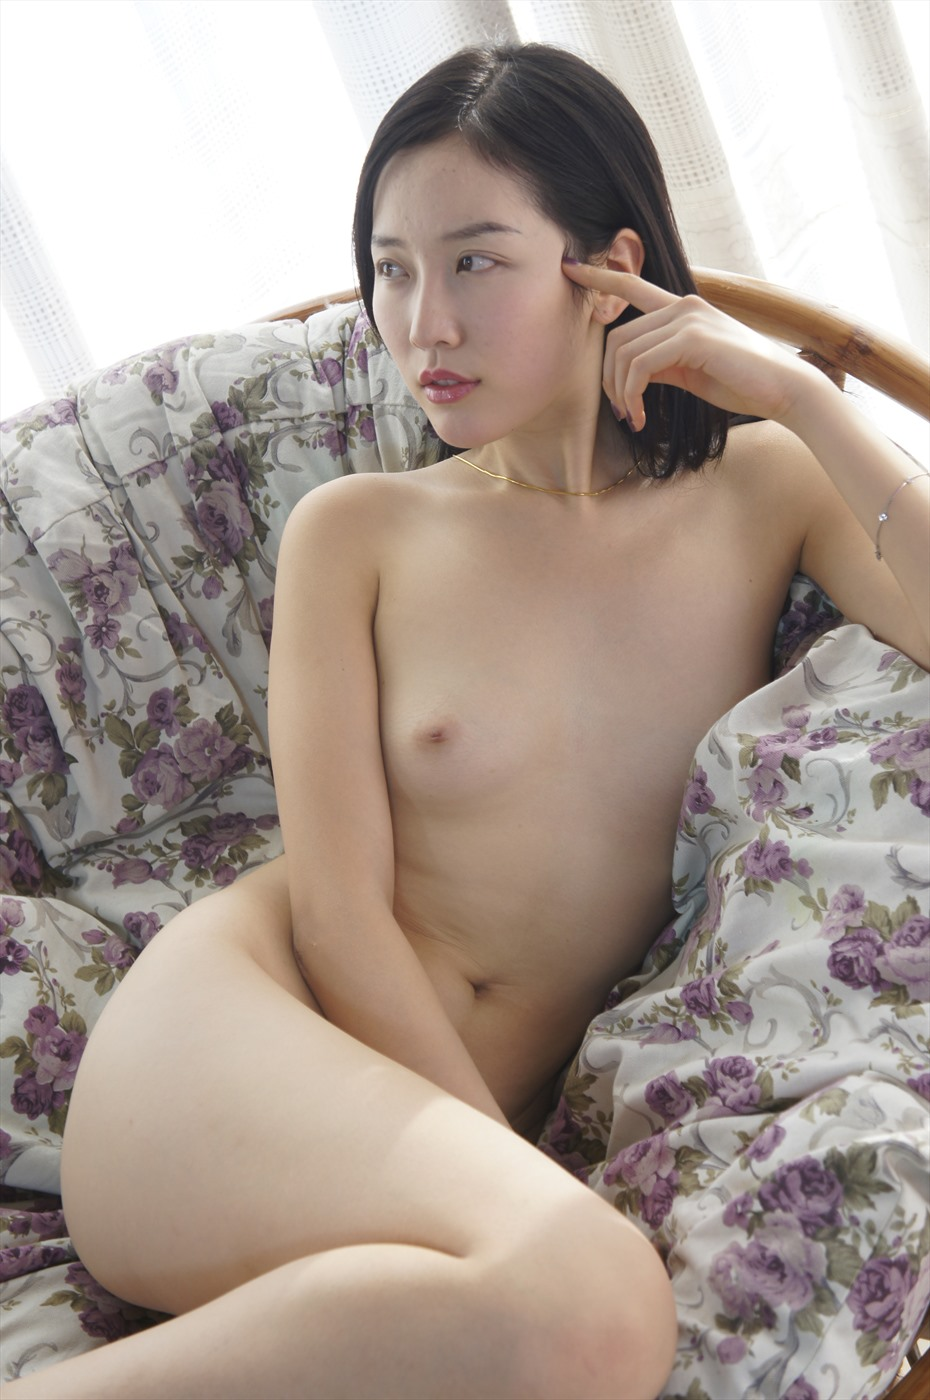 china girl xixi nude dsc2262 free erotic pictures